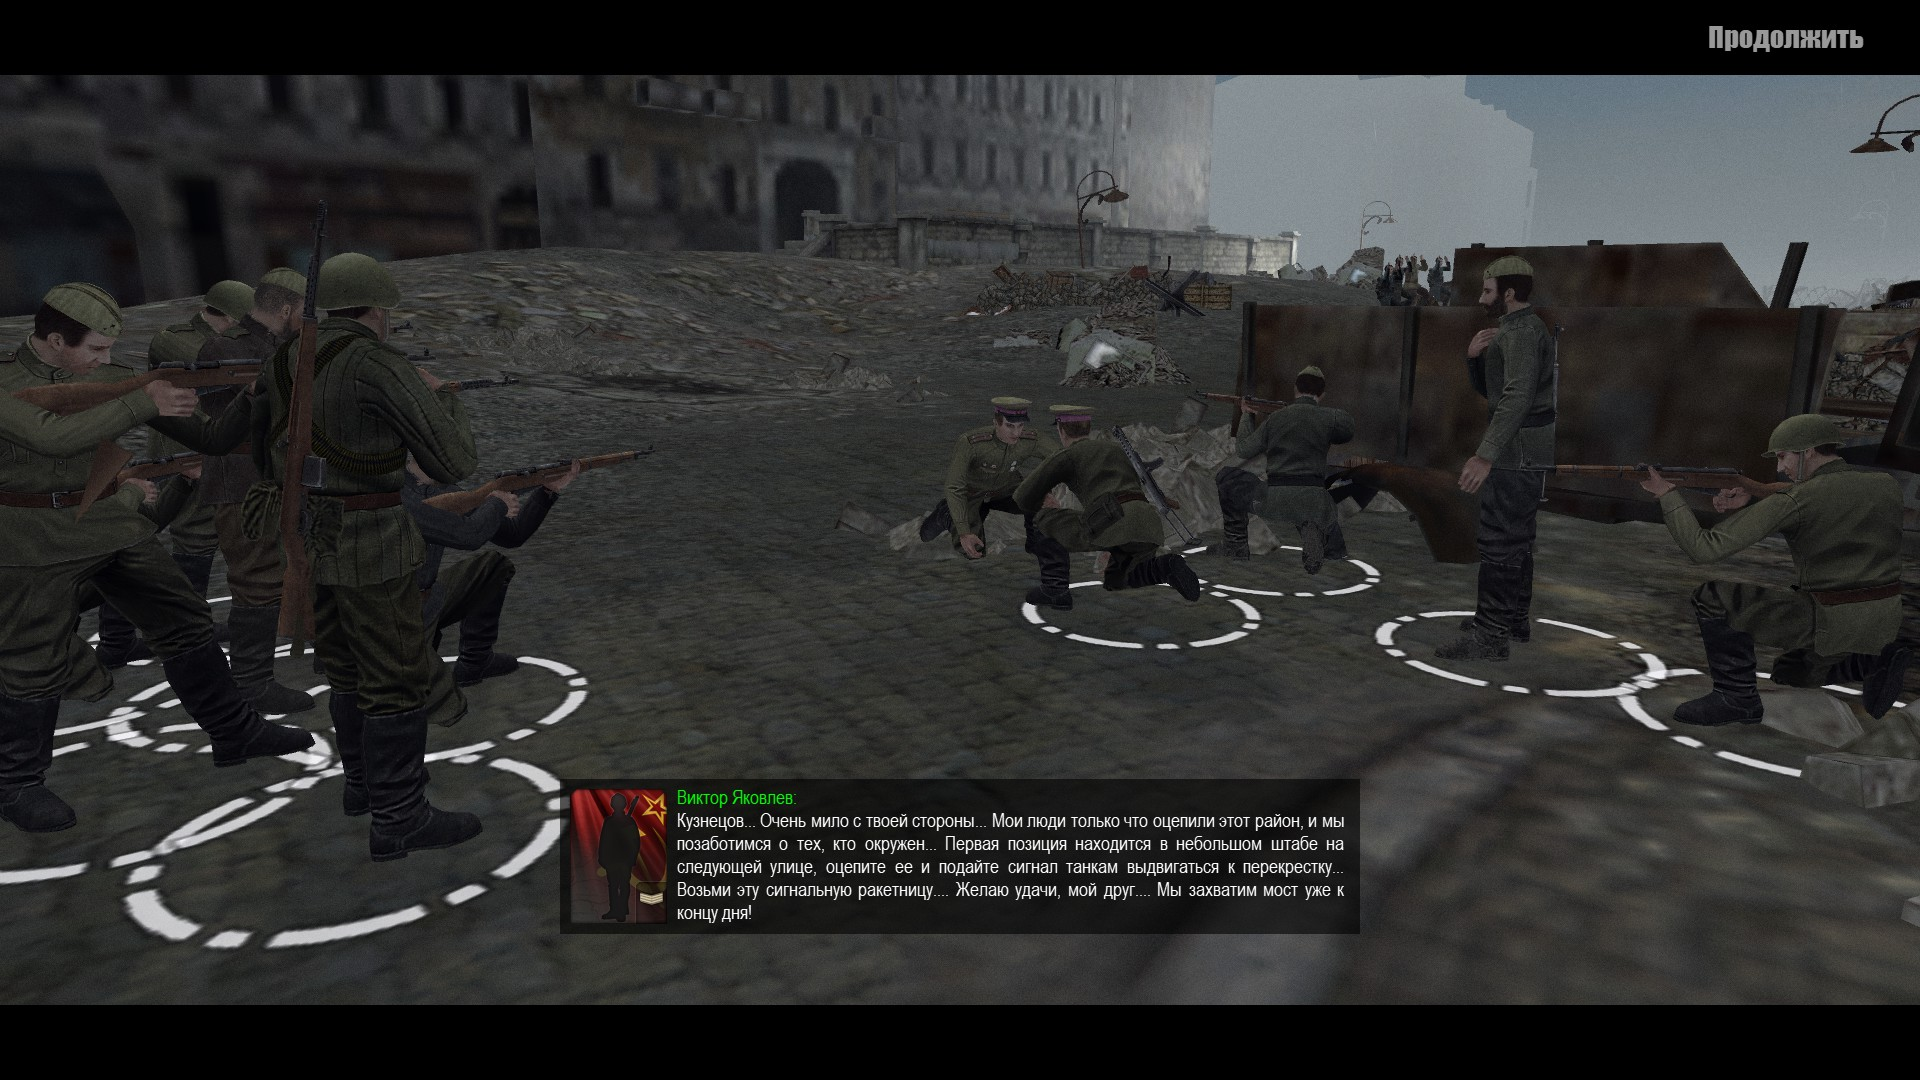 Русификатор к (SP Missions) Battle for Berlin Campaign (Updated)